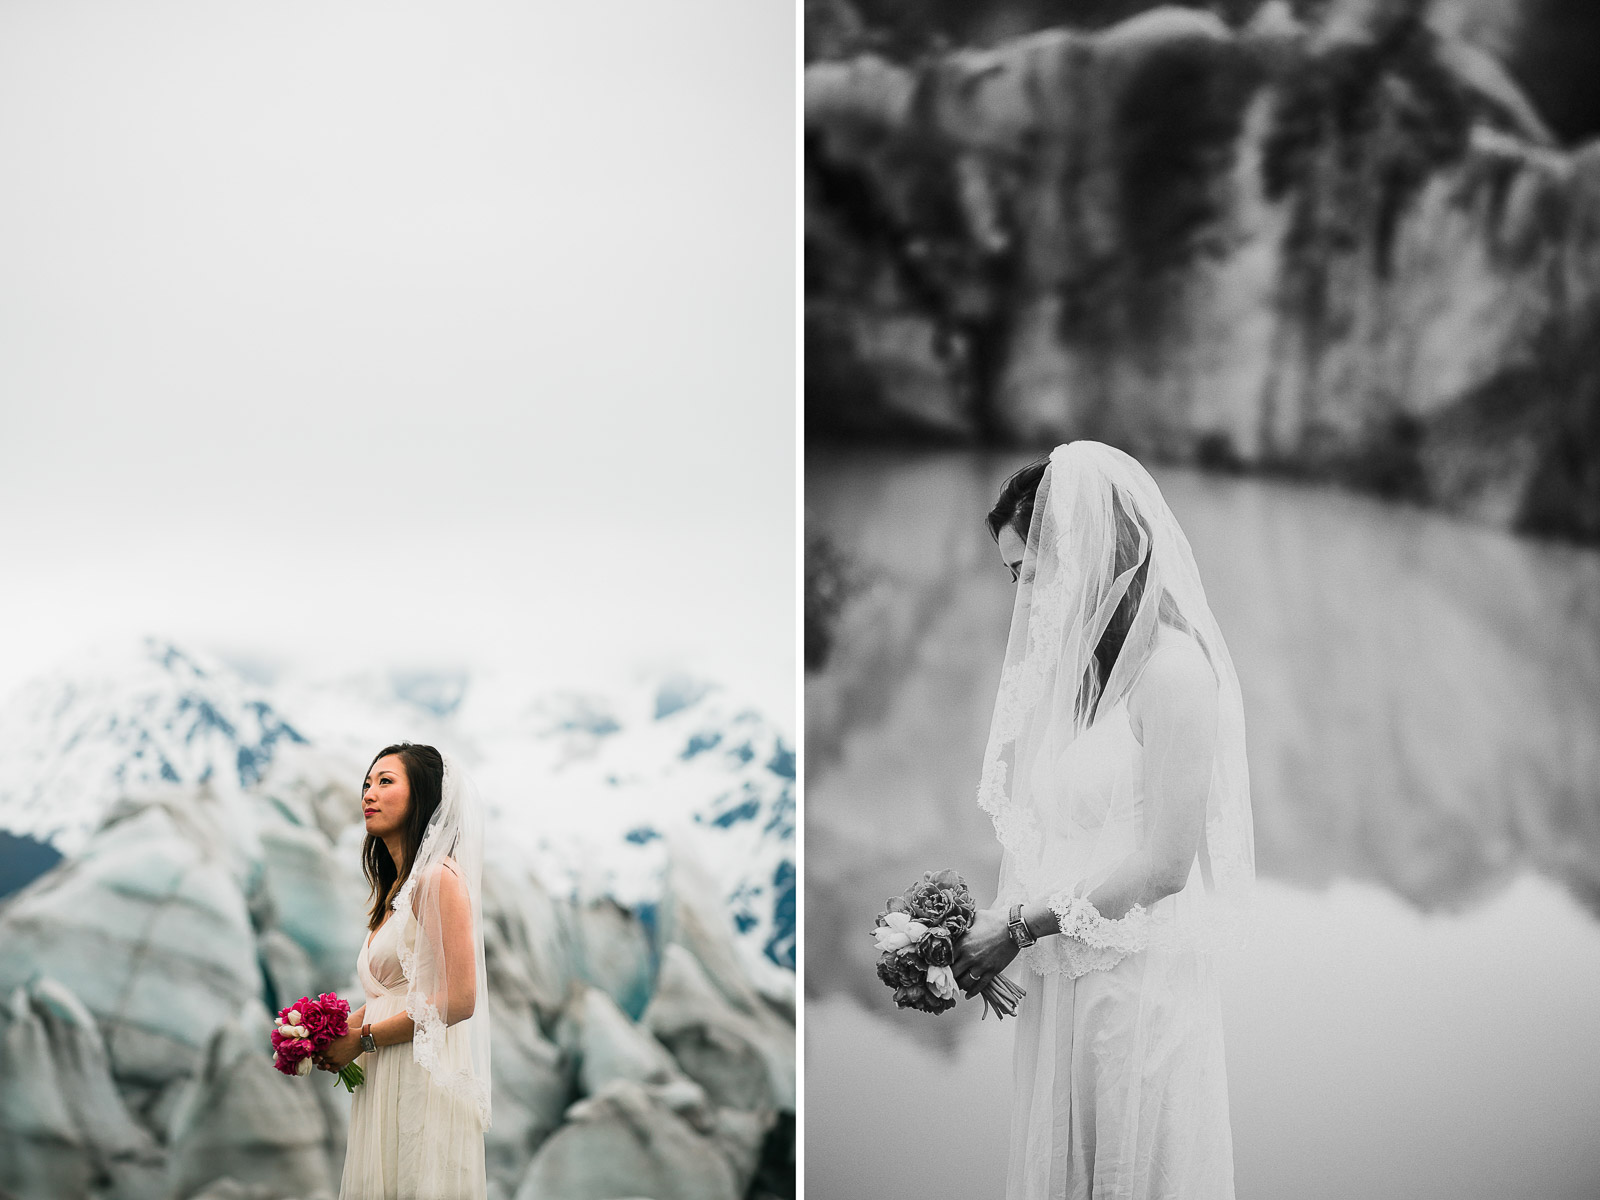 Jackie_Simon_Iceland_Elopement_Weddings_MJ_Studios-31